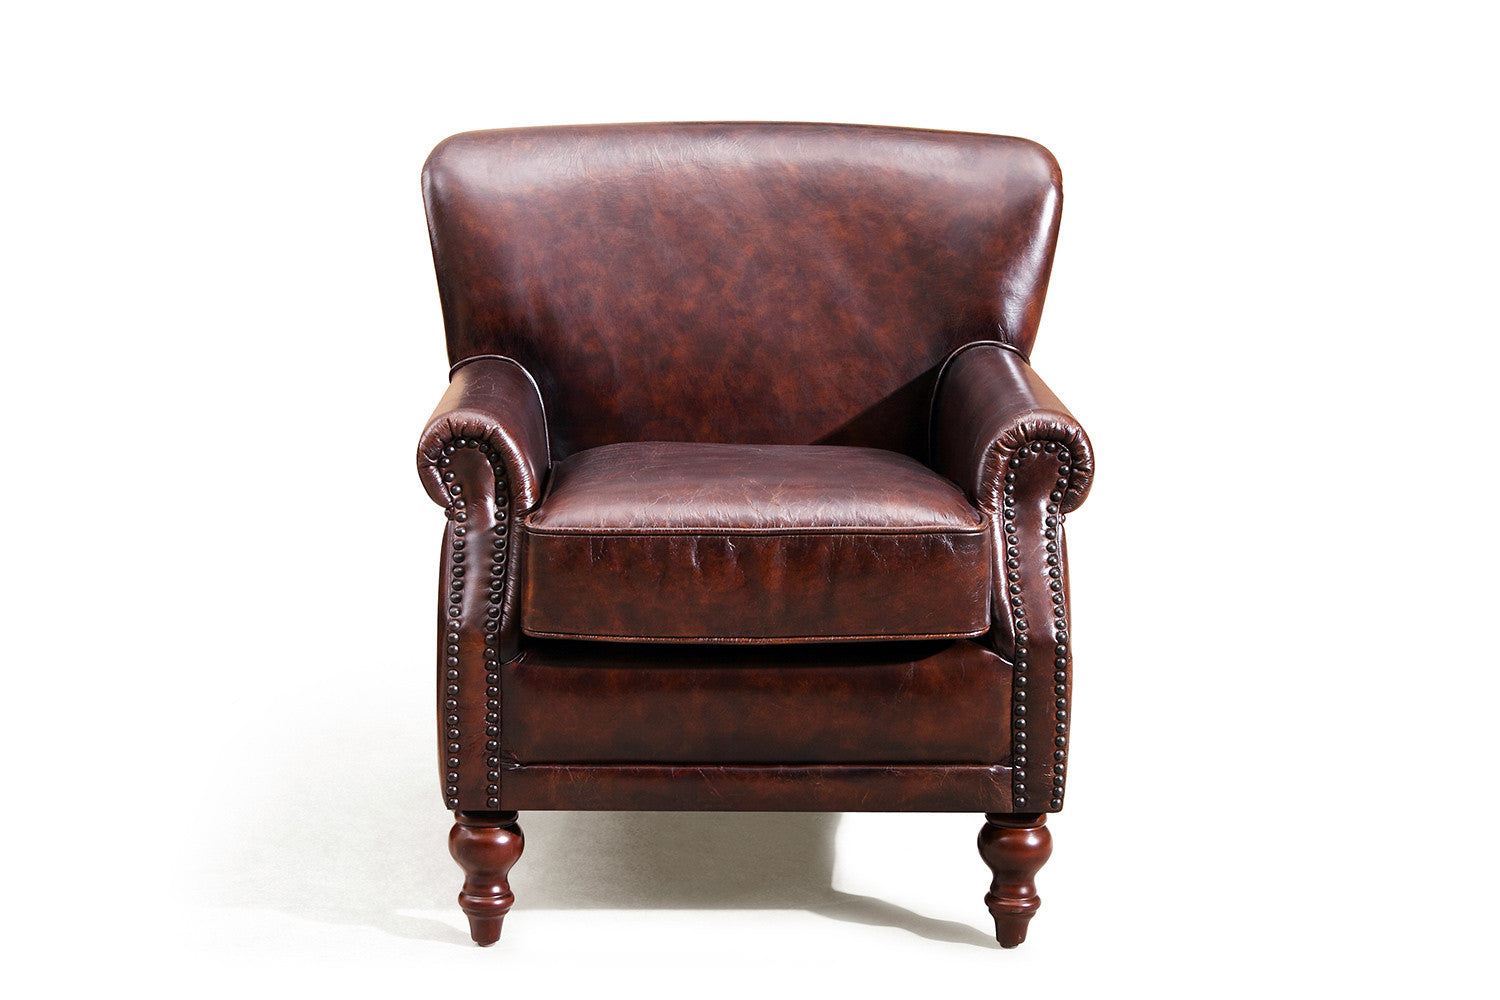 The cambridge english leather chair rose and moore for Chaise fauteuil cuir